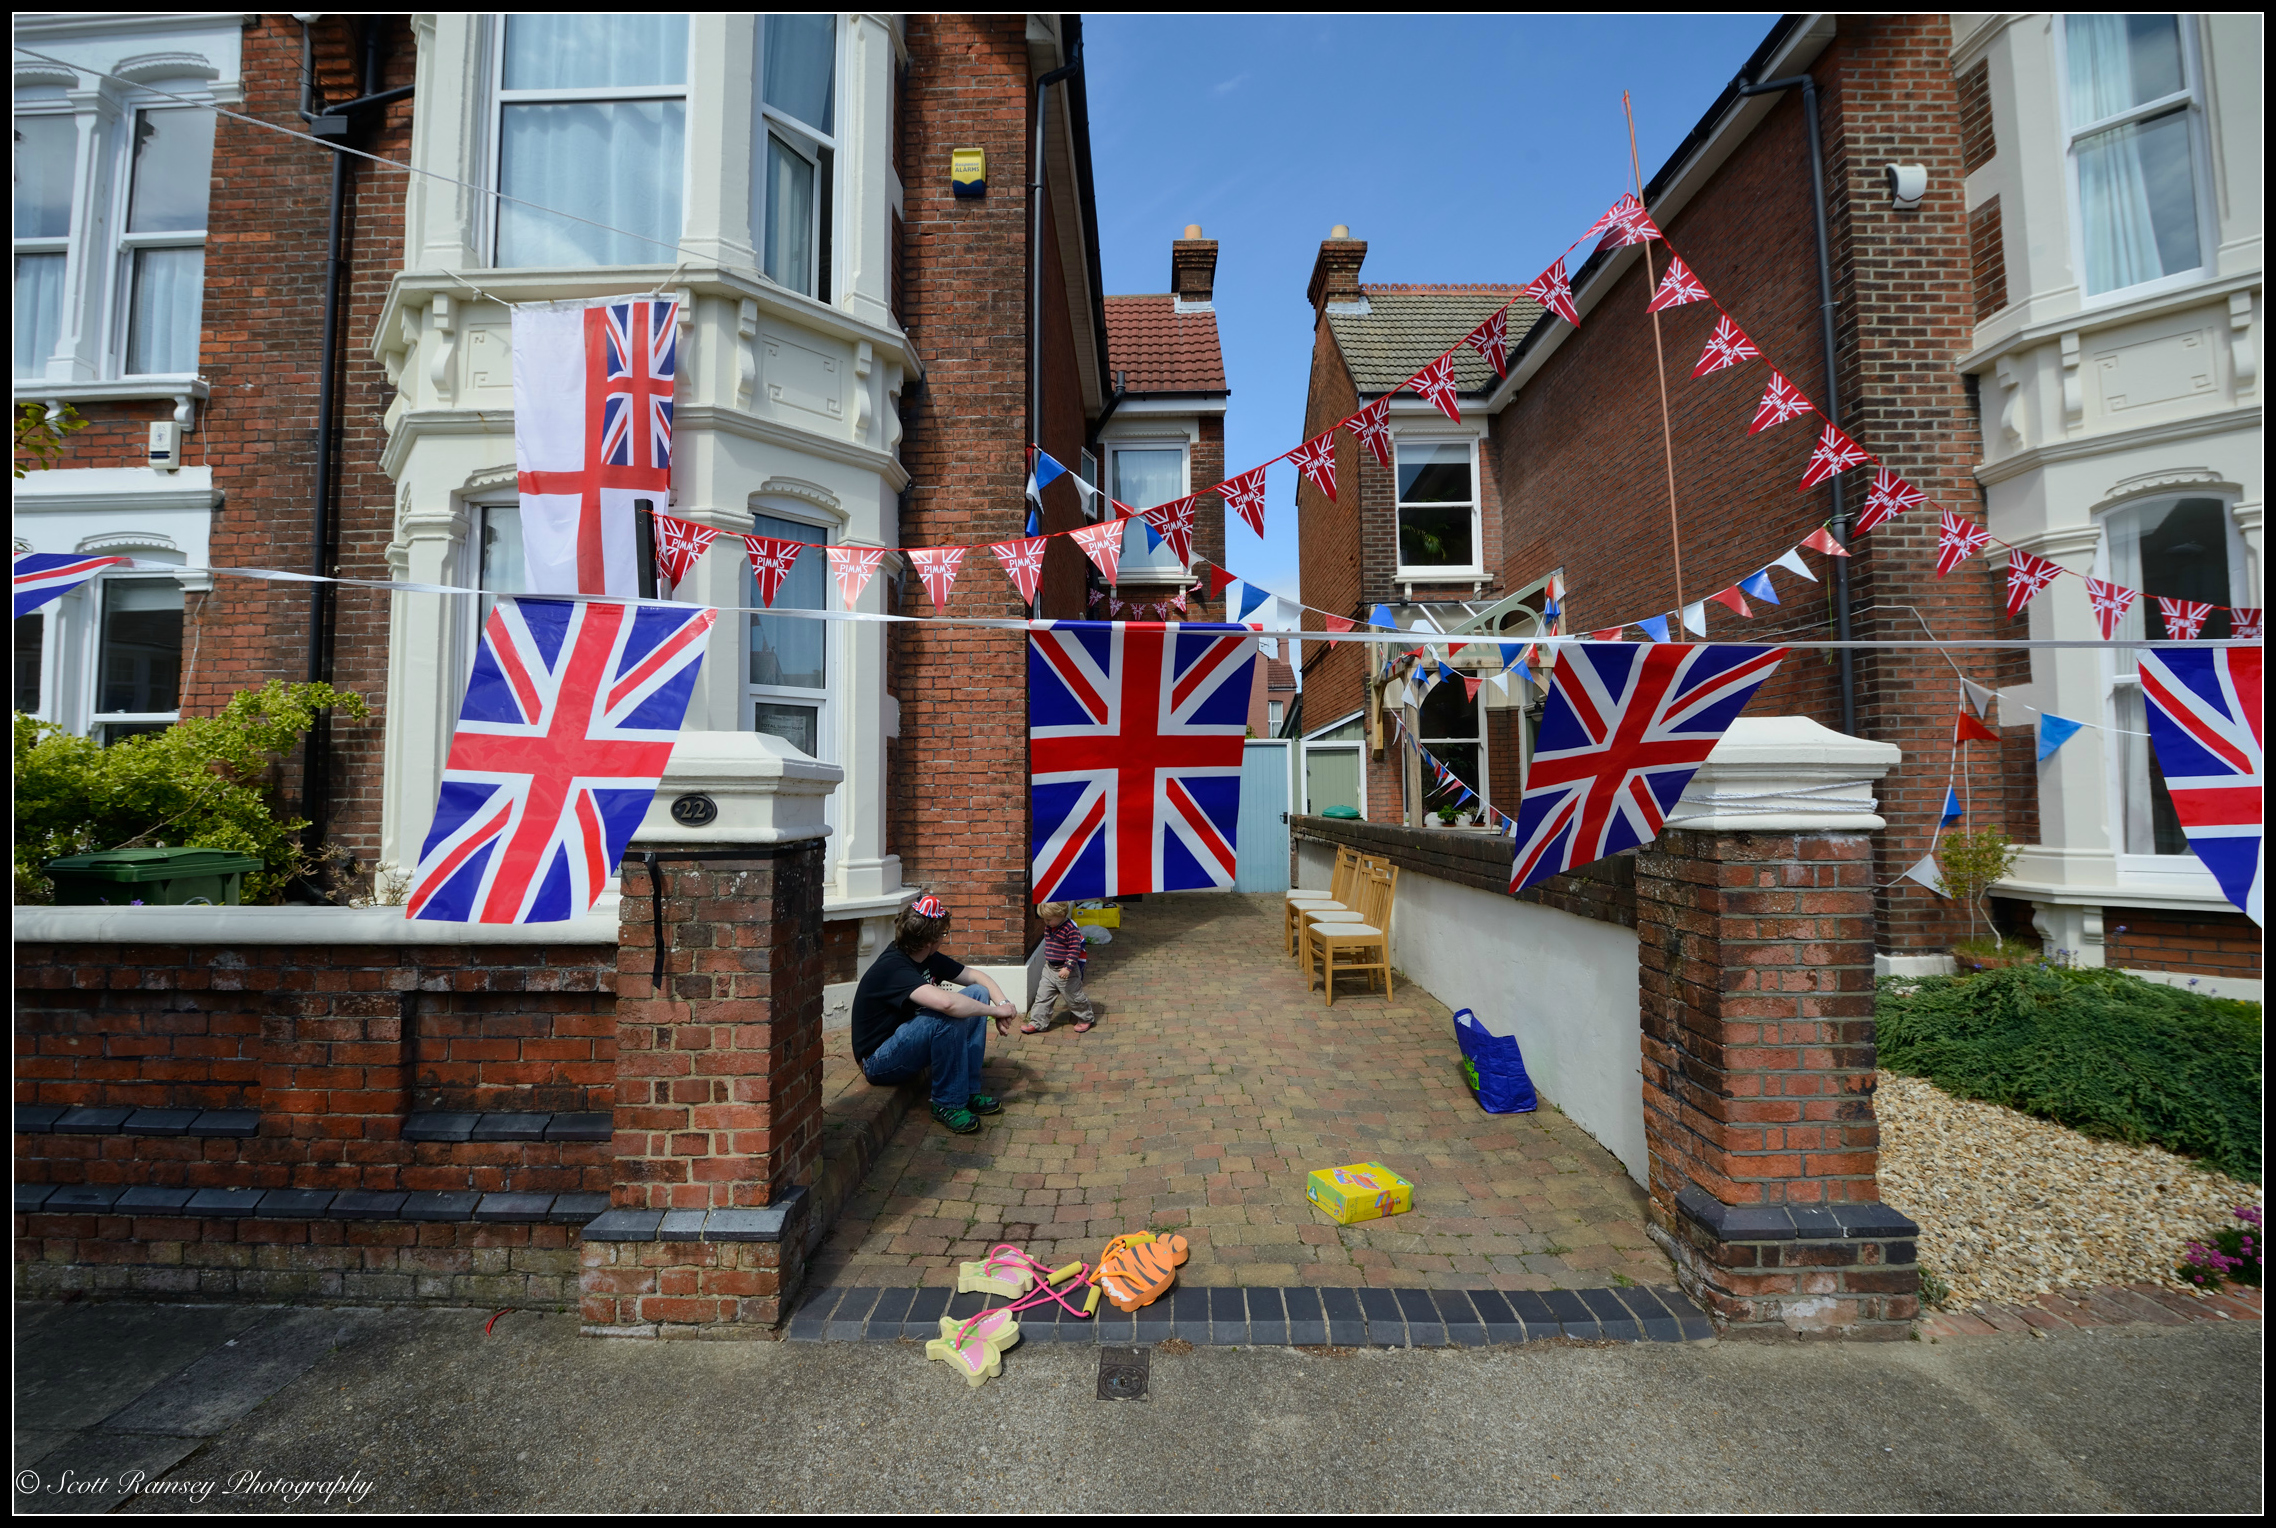 A house in Nettlecombe Avenue, Southsea, Portsmouth, UK is covered in flags and bunting during the VE day 70th anniversary street party celebrations. © Scott Ramsey Photography.